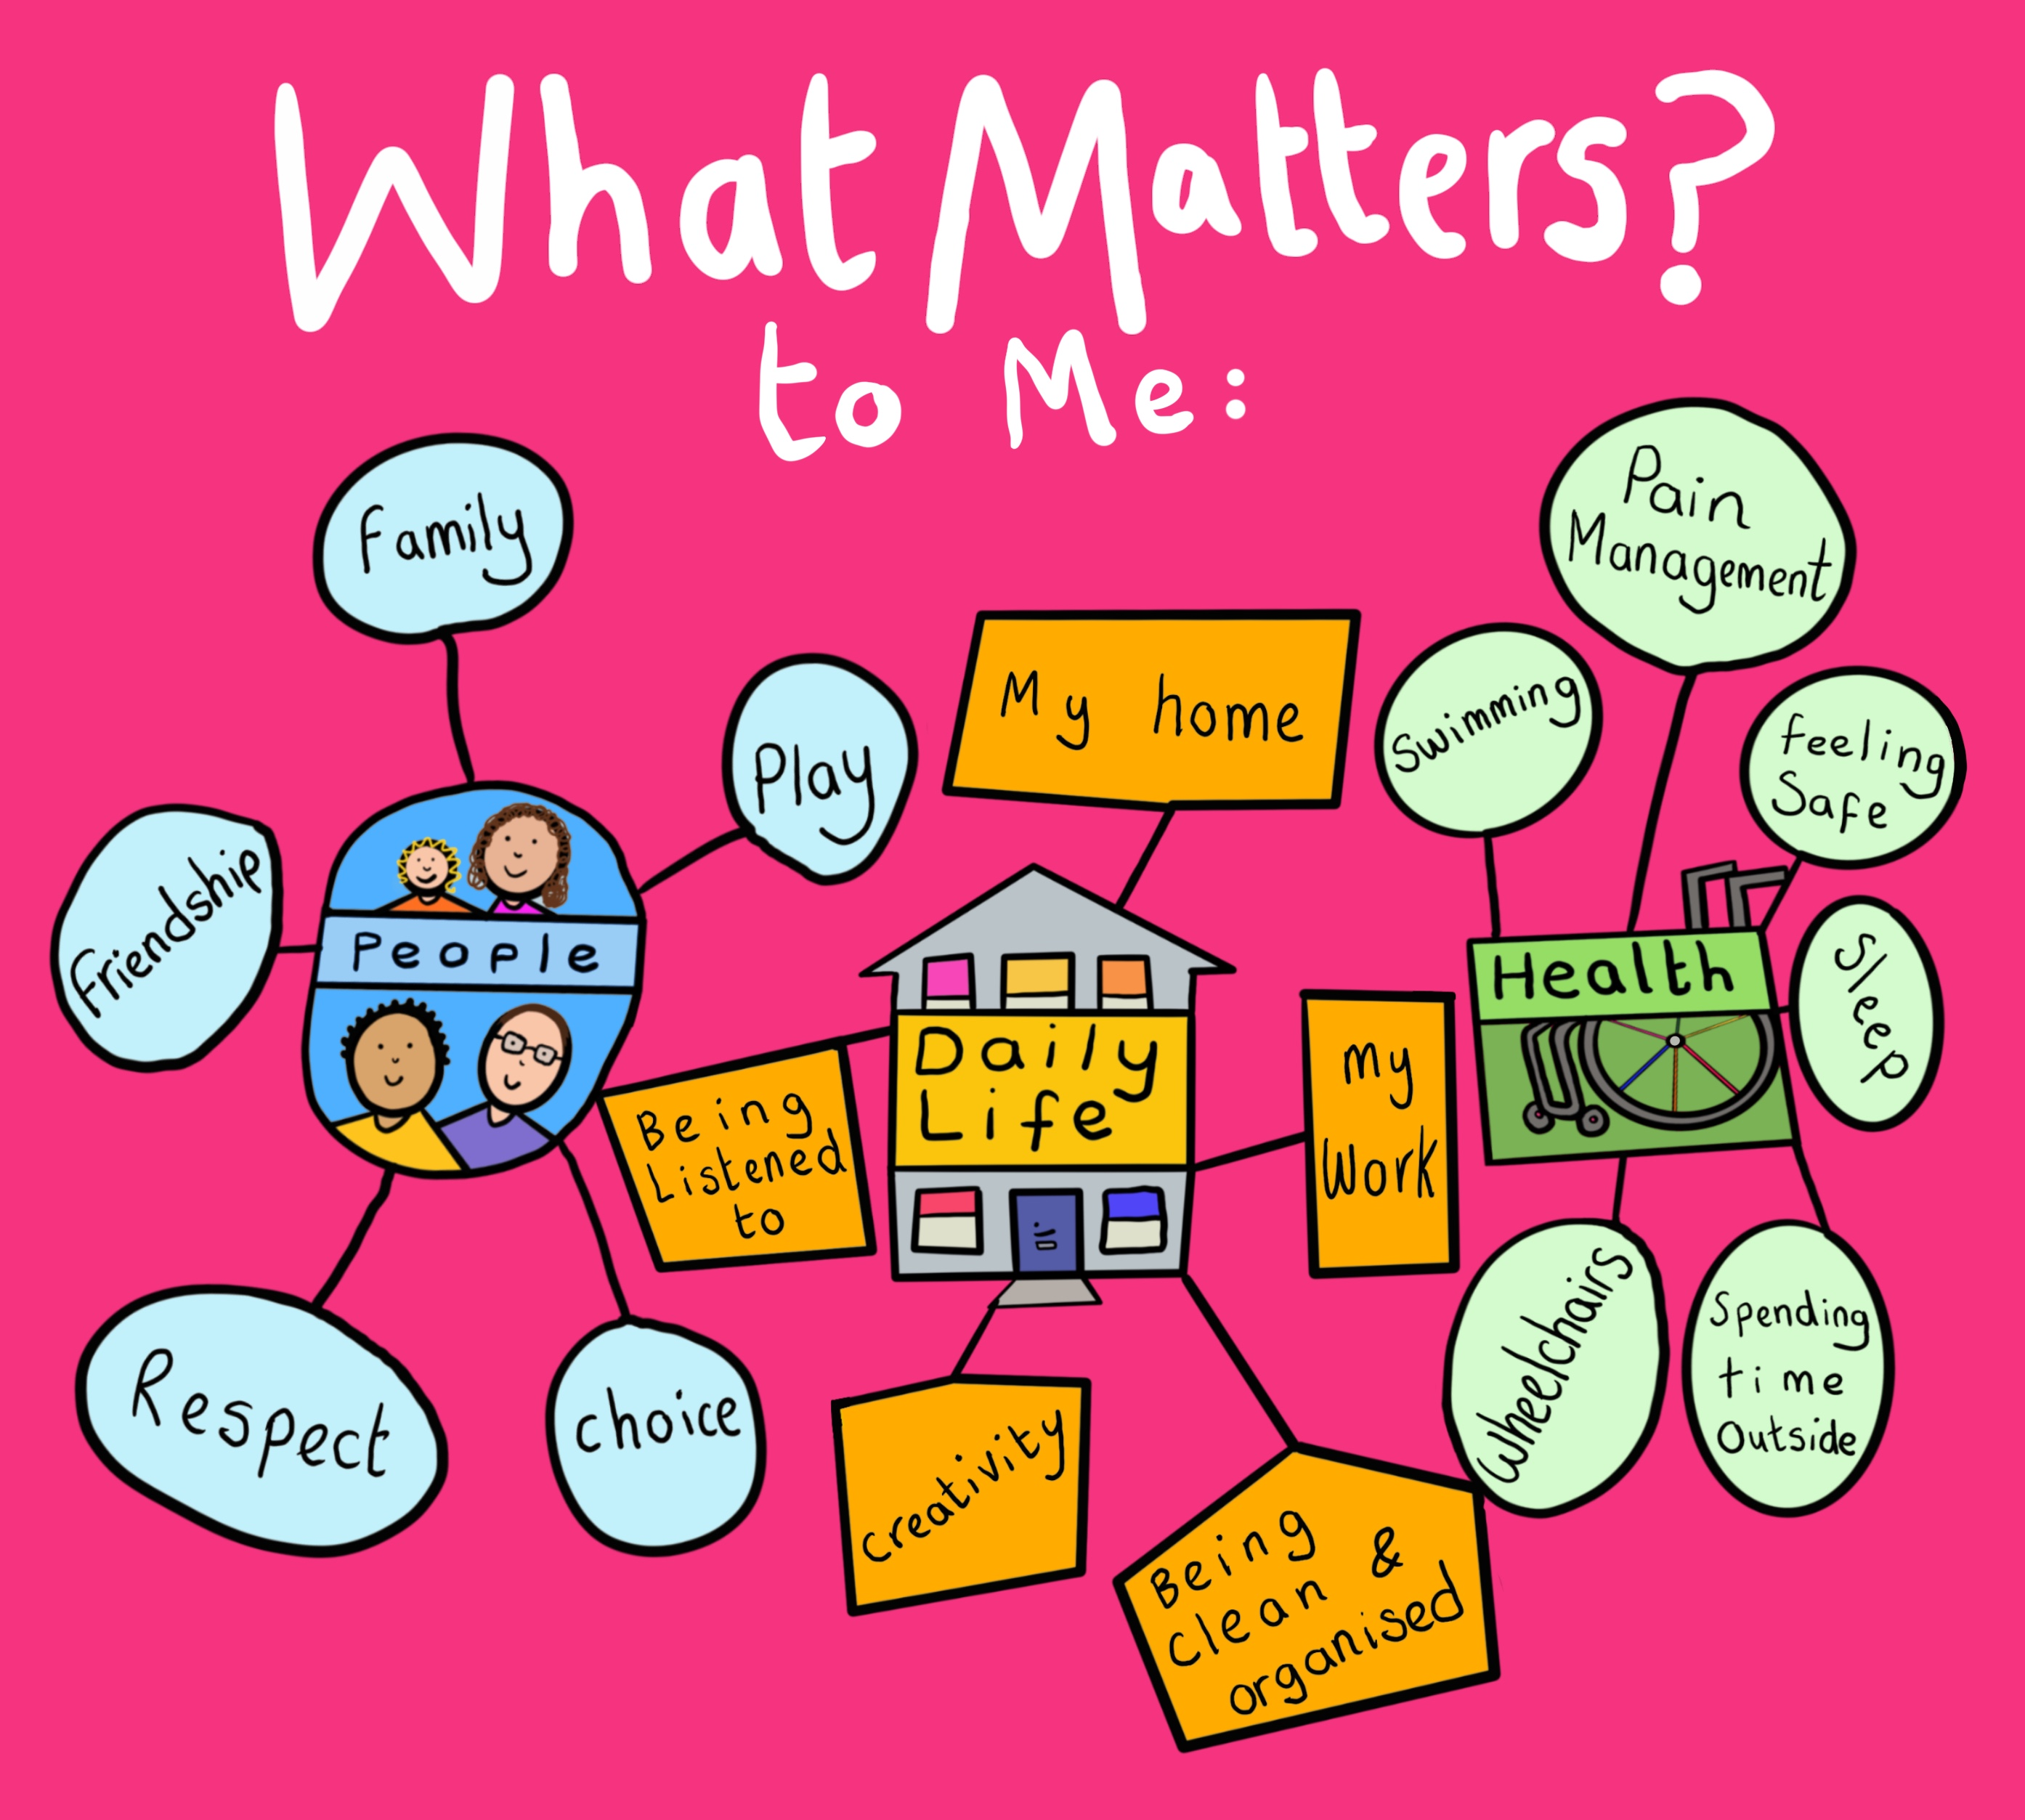 A digital illustration with the title What Matters? to Me in white writing on a pink background. A bubble with four people drawn in it is surrounded by the words: family, play, choice, respect and friendship. A drawing of a house with 'daily life' written on it is surrounded by the words: my home, my work, being clean and organised, creativity and being listened to. A drawing of a wheelchair with the word health on top of it is surrounded by the words: pain management, feeling safe, sleep, spending time outside, wheelchairs and swimming.